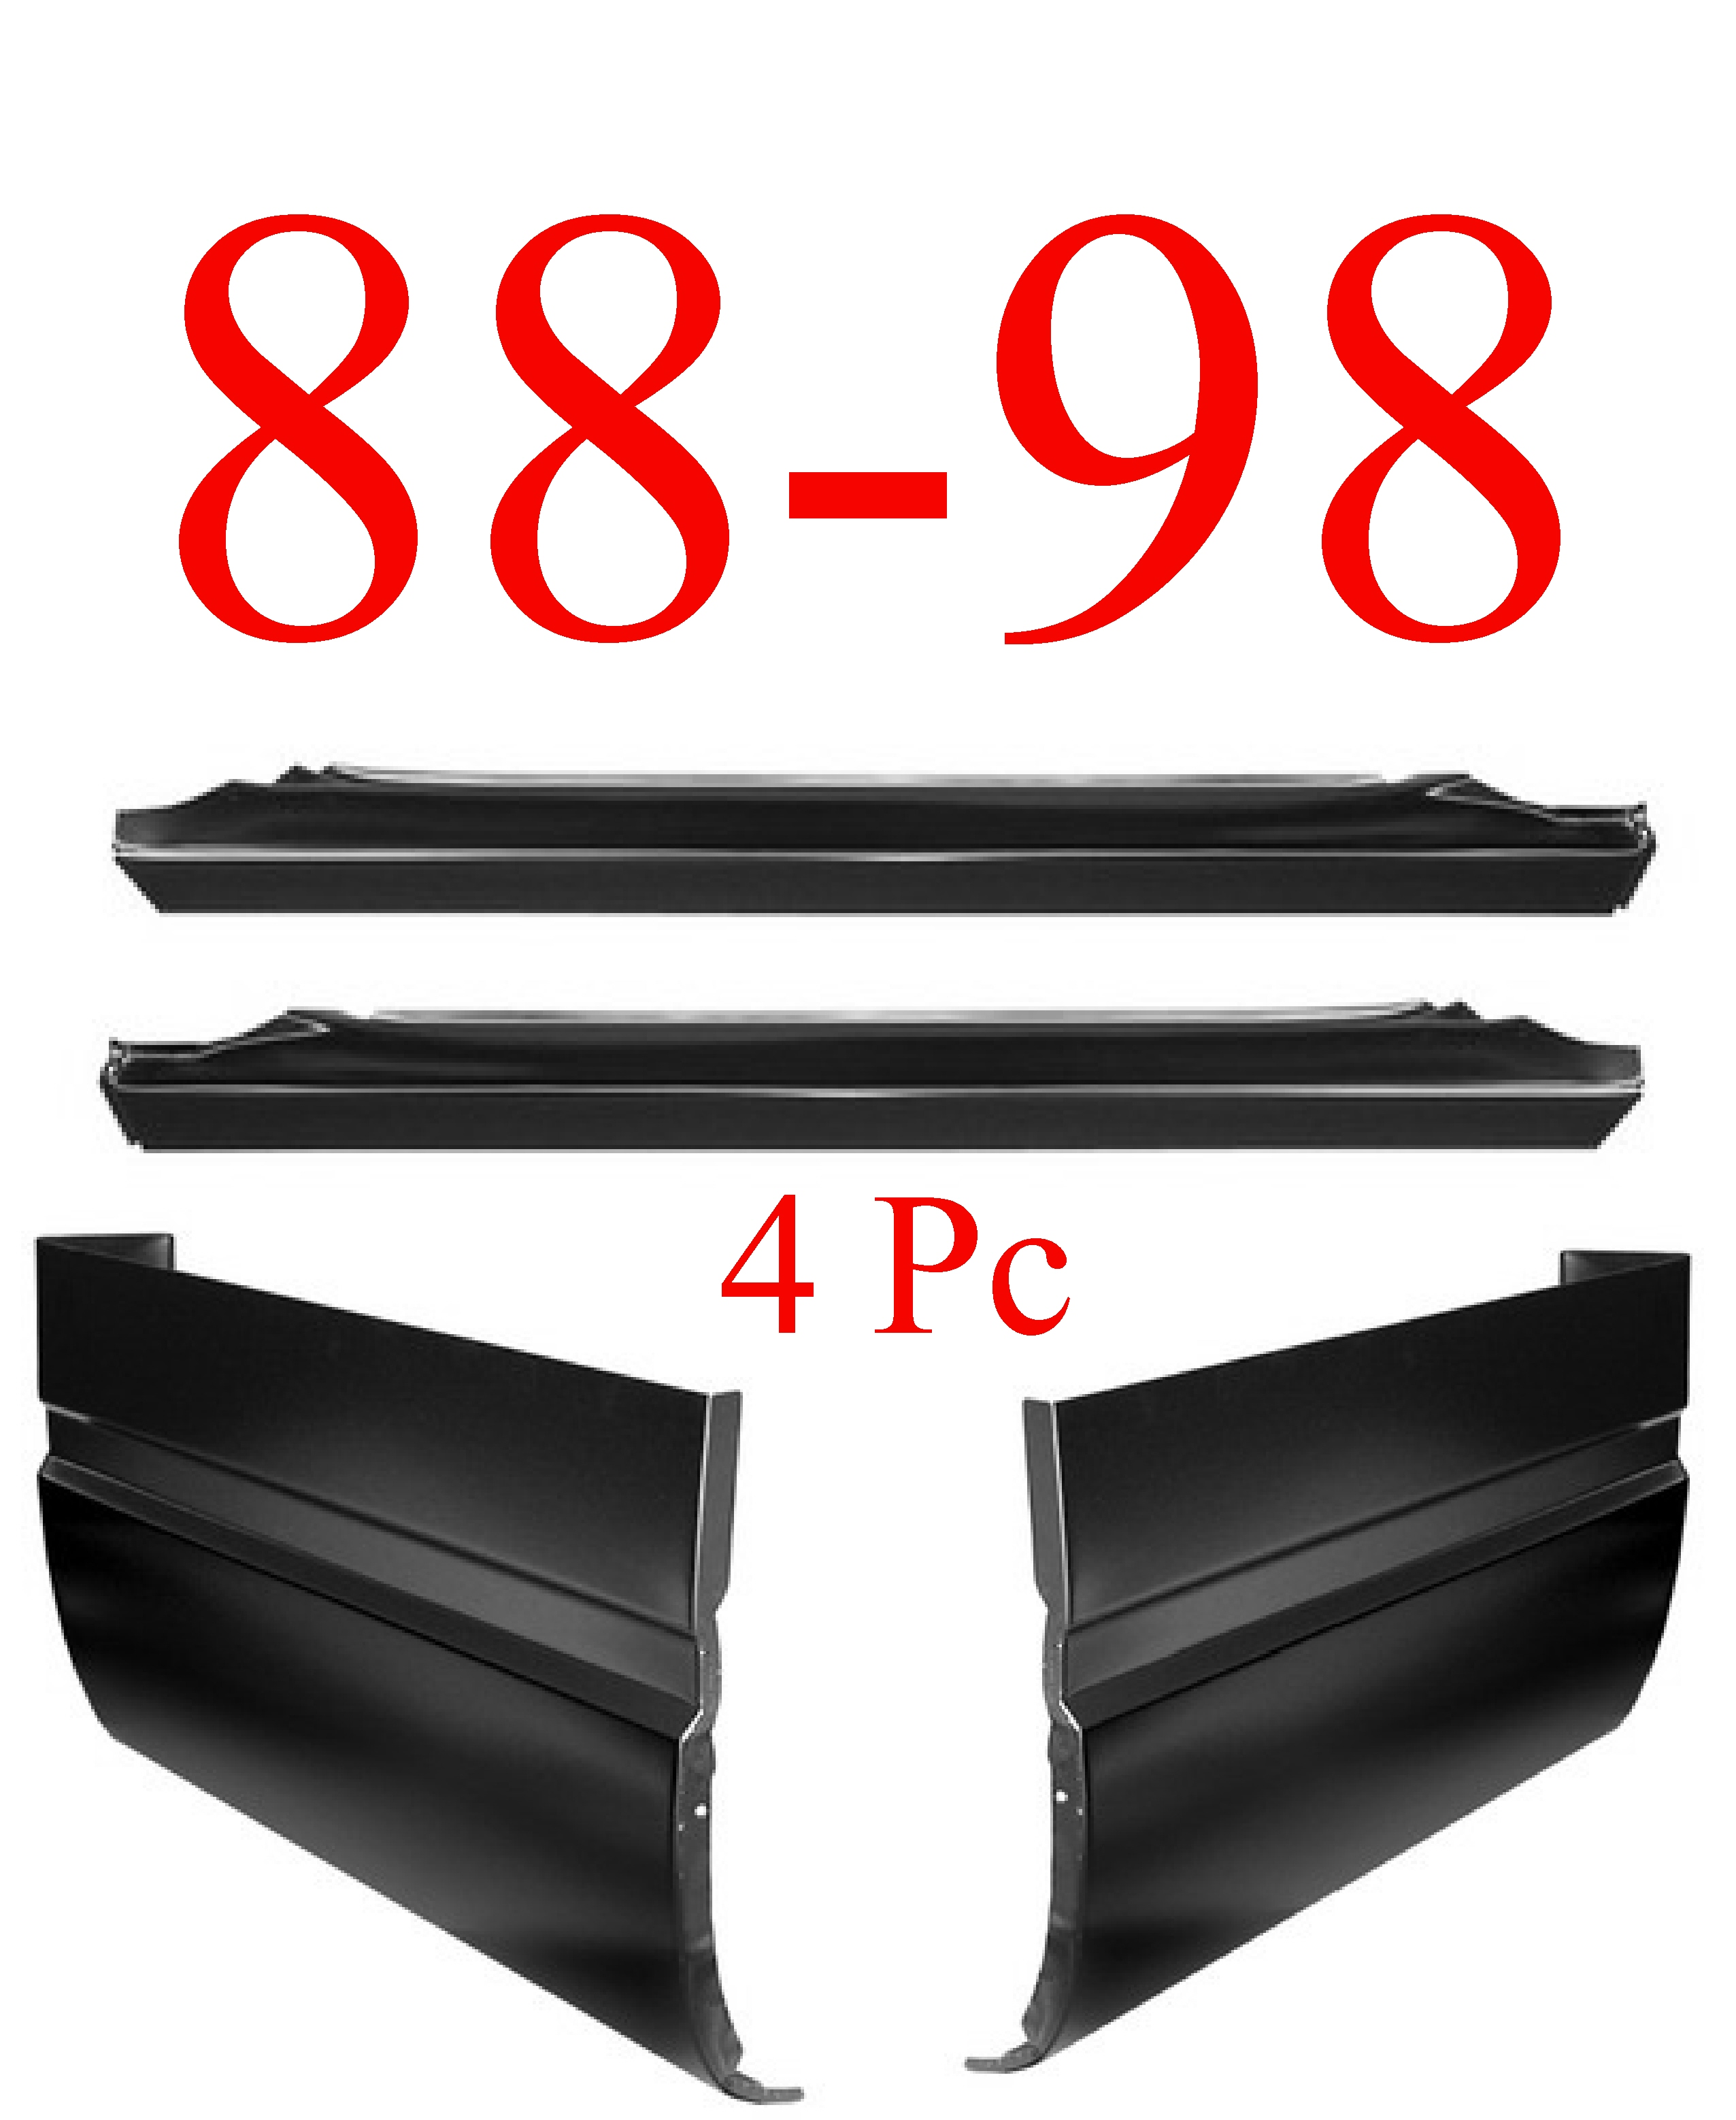 88-98 4Pc Slip-On Rocker & Extended Cab Corner Kit